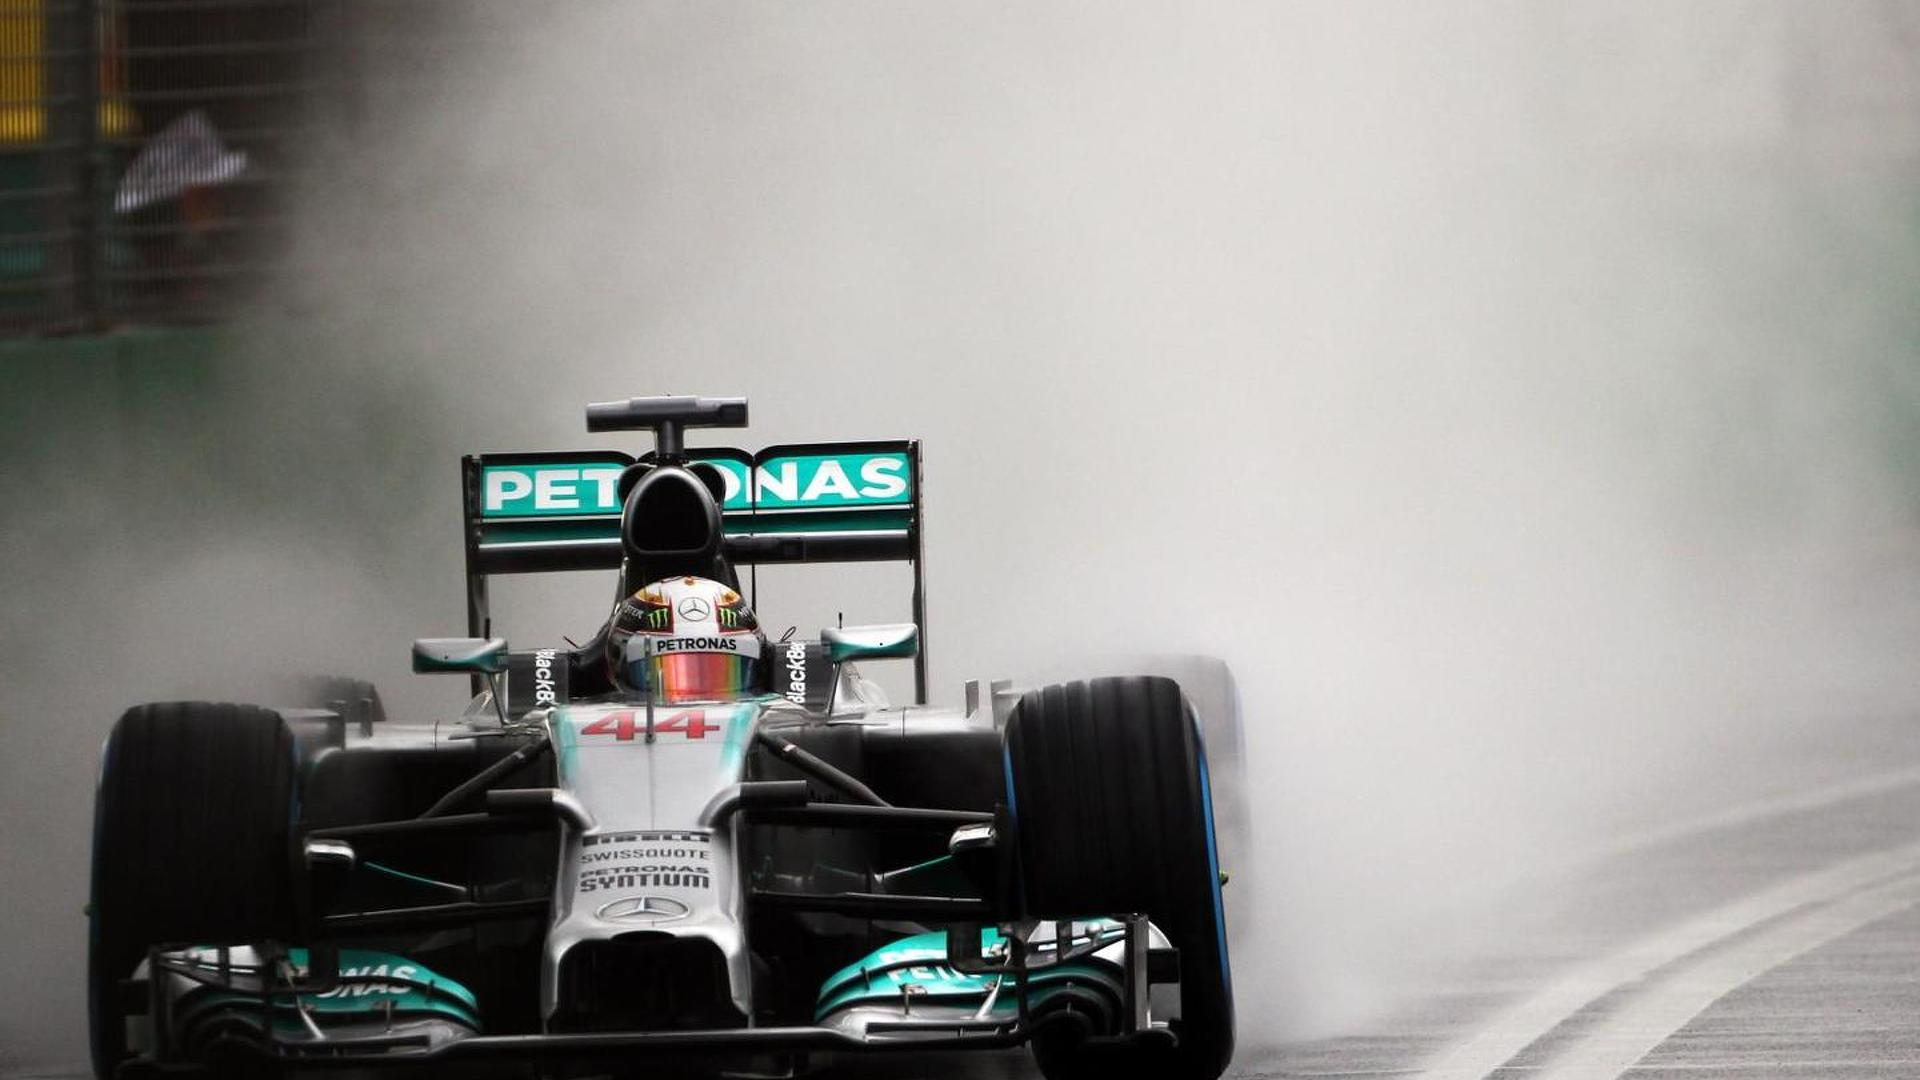 Hamilton's Melbourne engine still firing